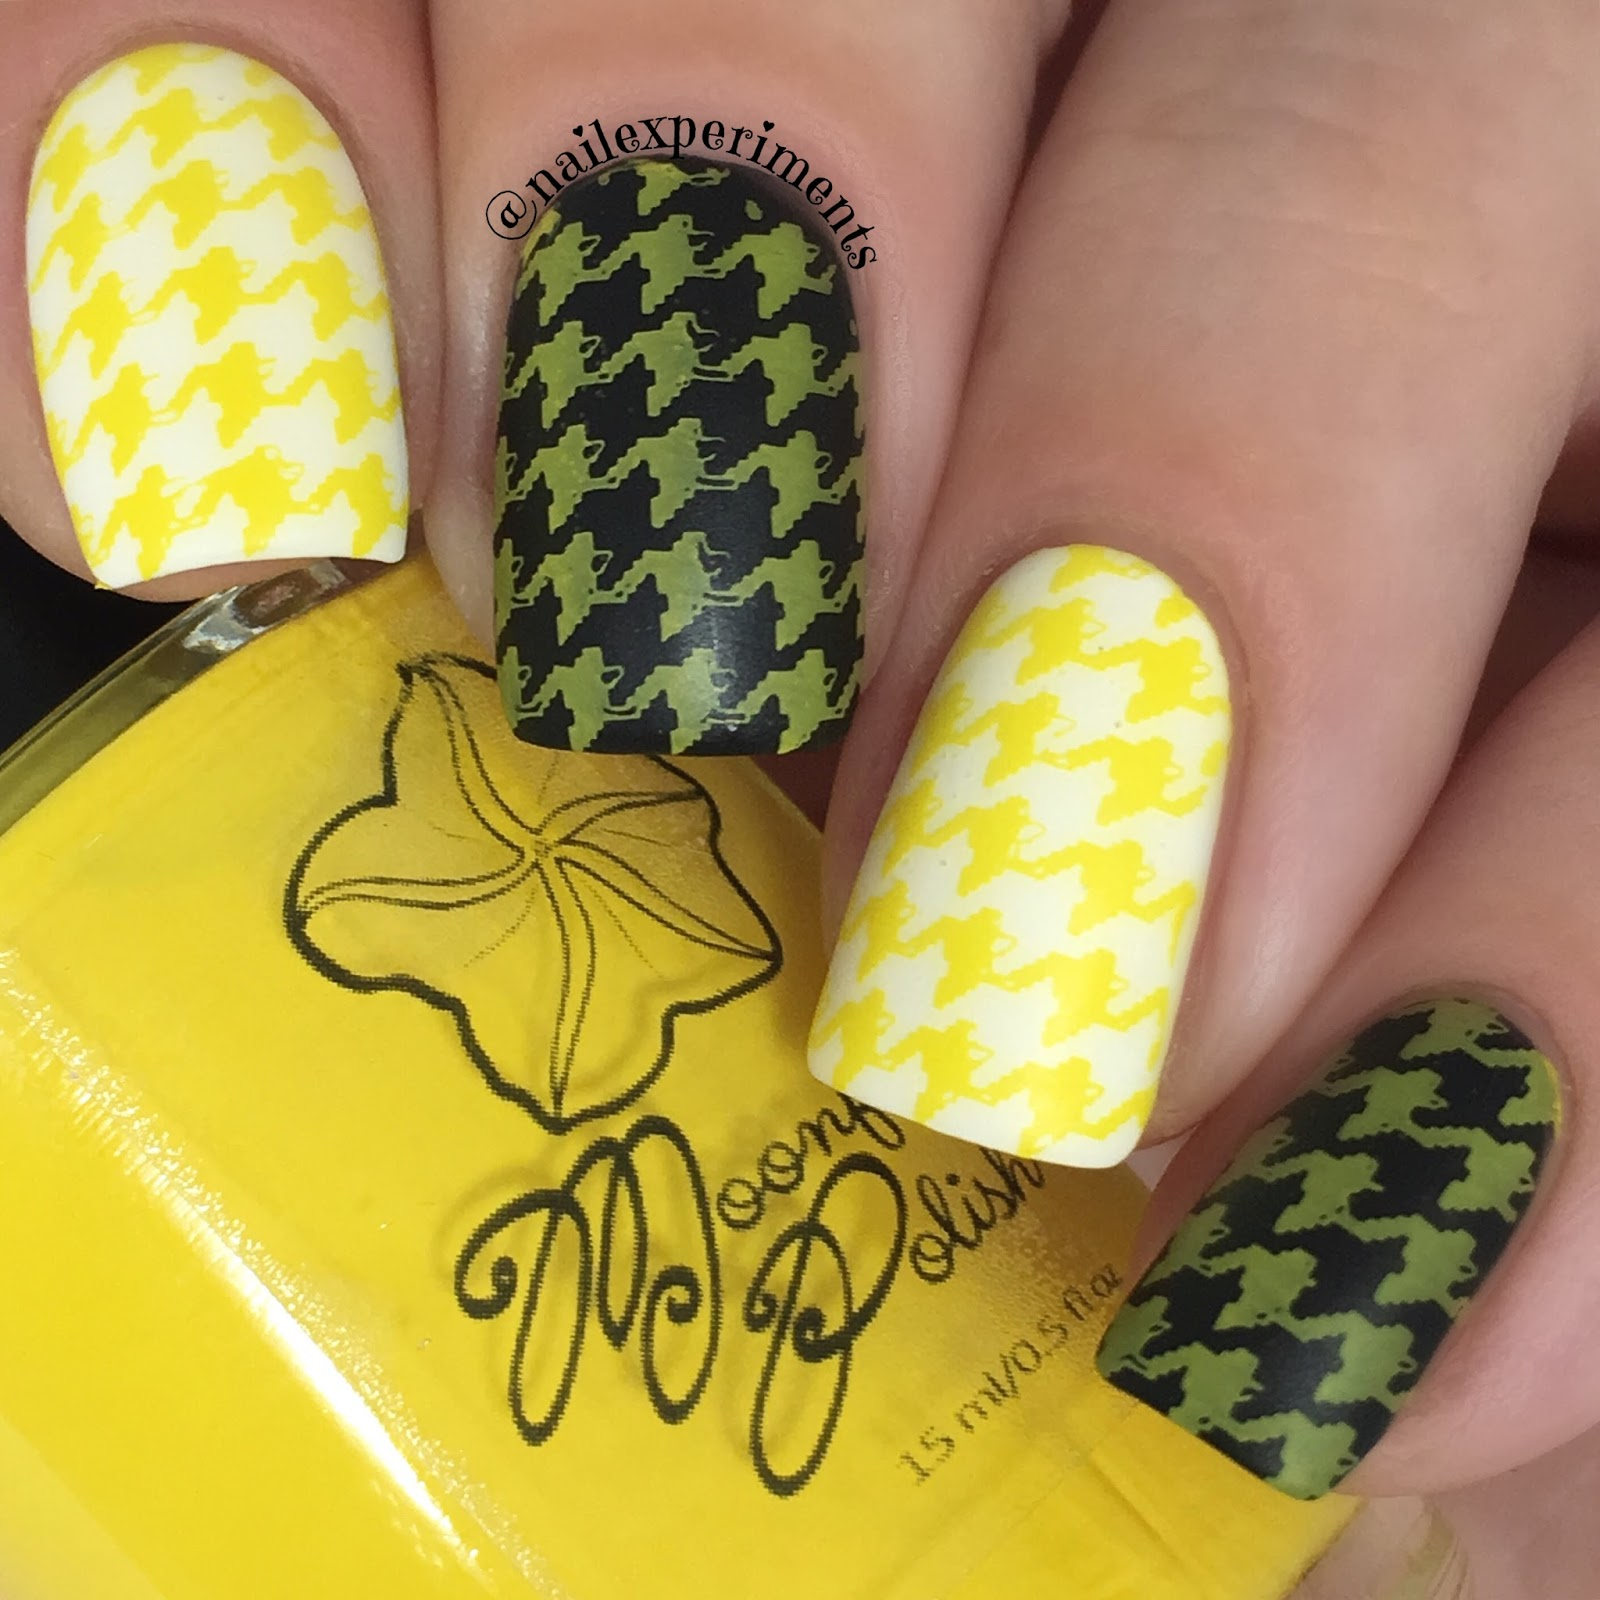 Moon flower polish amarillo swatch